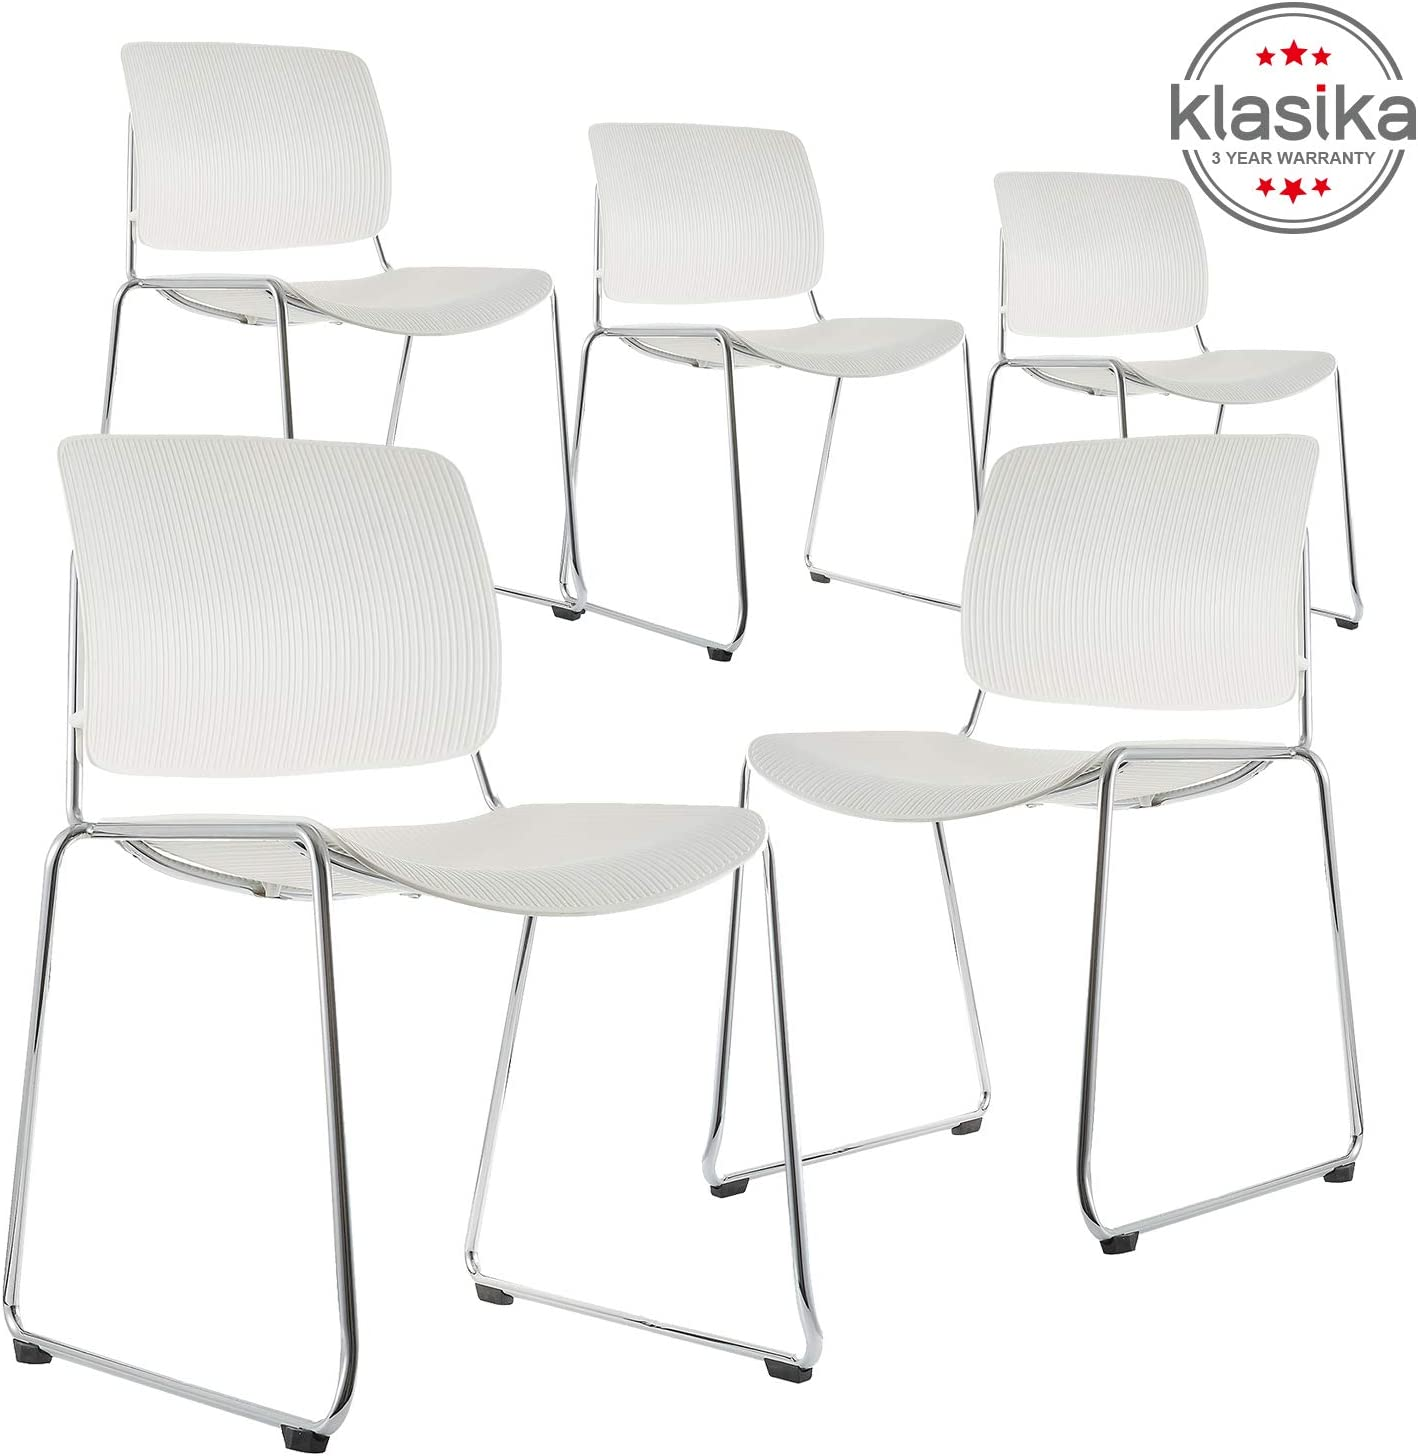 KLASIKA Reception Stacking Chair with Lumbar Support and Solid Steel Frame for Guest Home Office Conference Breakroom Set of 5 Black